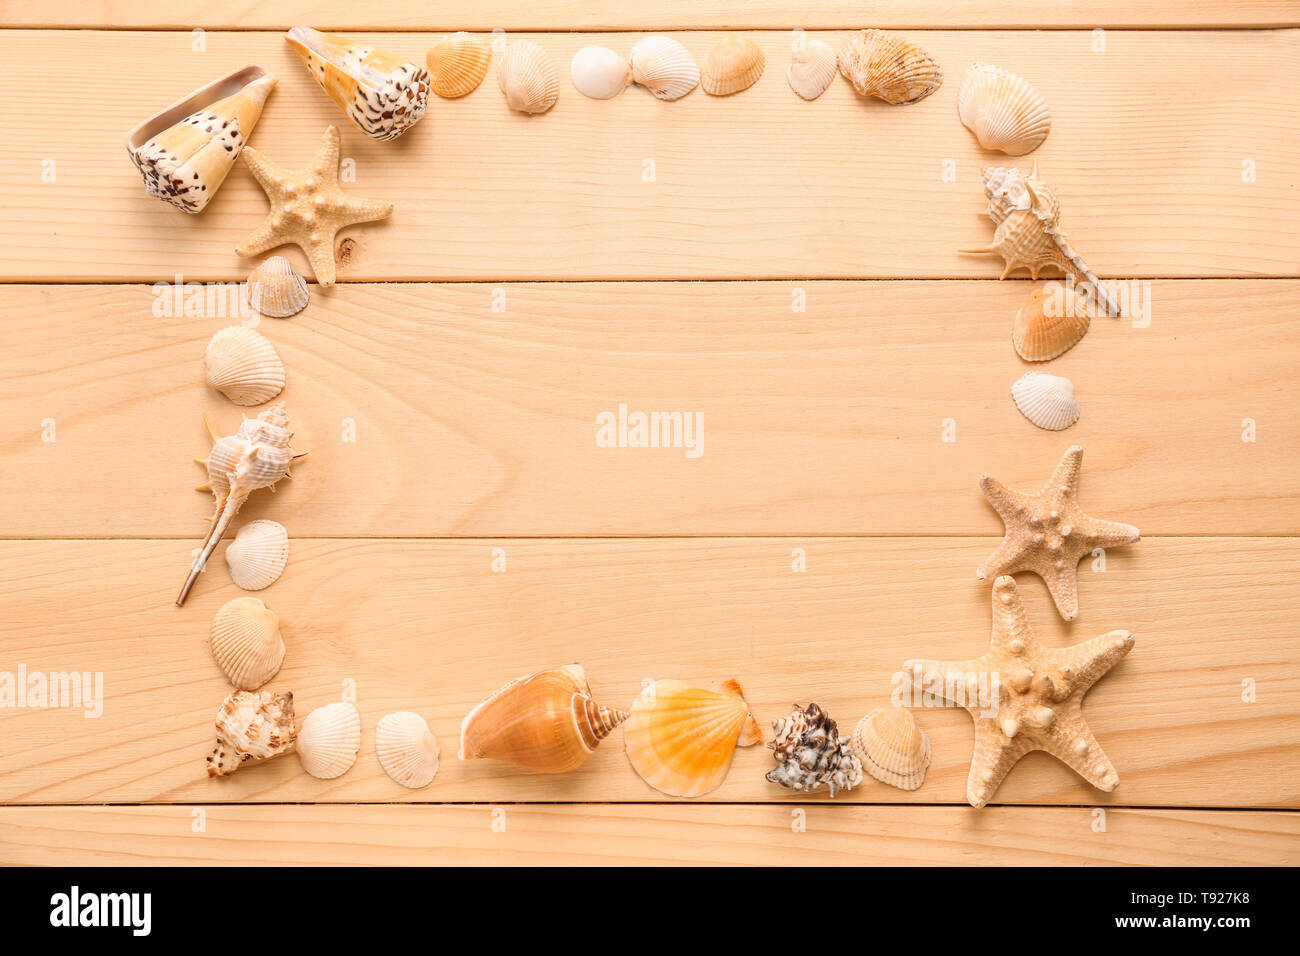 Frame made of different sea shells and starfishes on wooden background - Stock Image